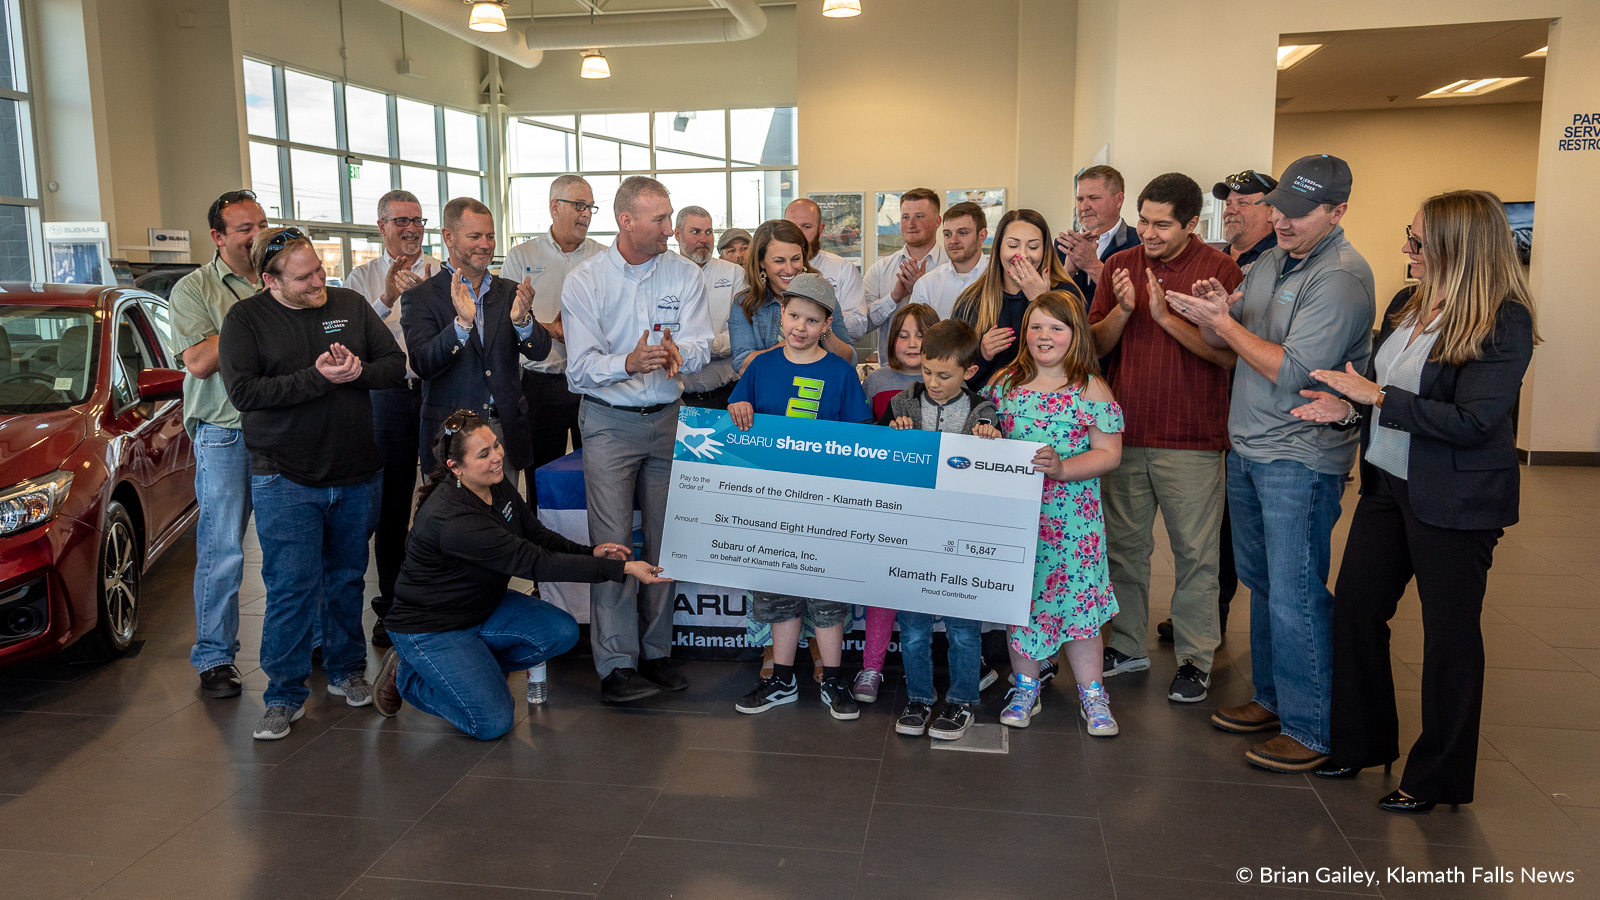 Friends of the Children, Klamath Basin receives a check for $6847 from Klamath Falls Subaru as part of the Subaru Share the Love Event.